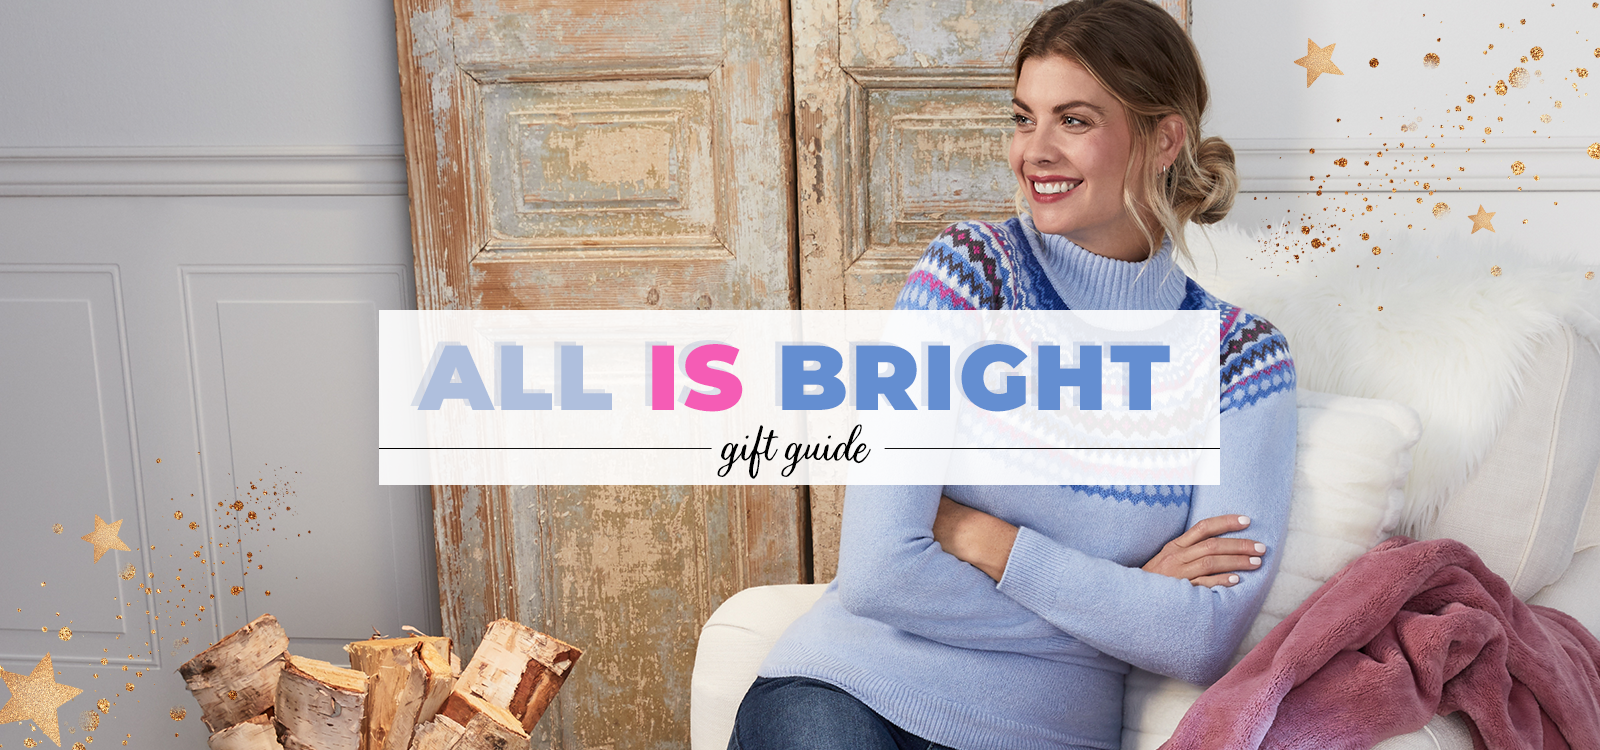 All is Bright Gift Guide.